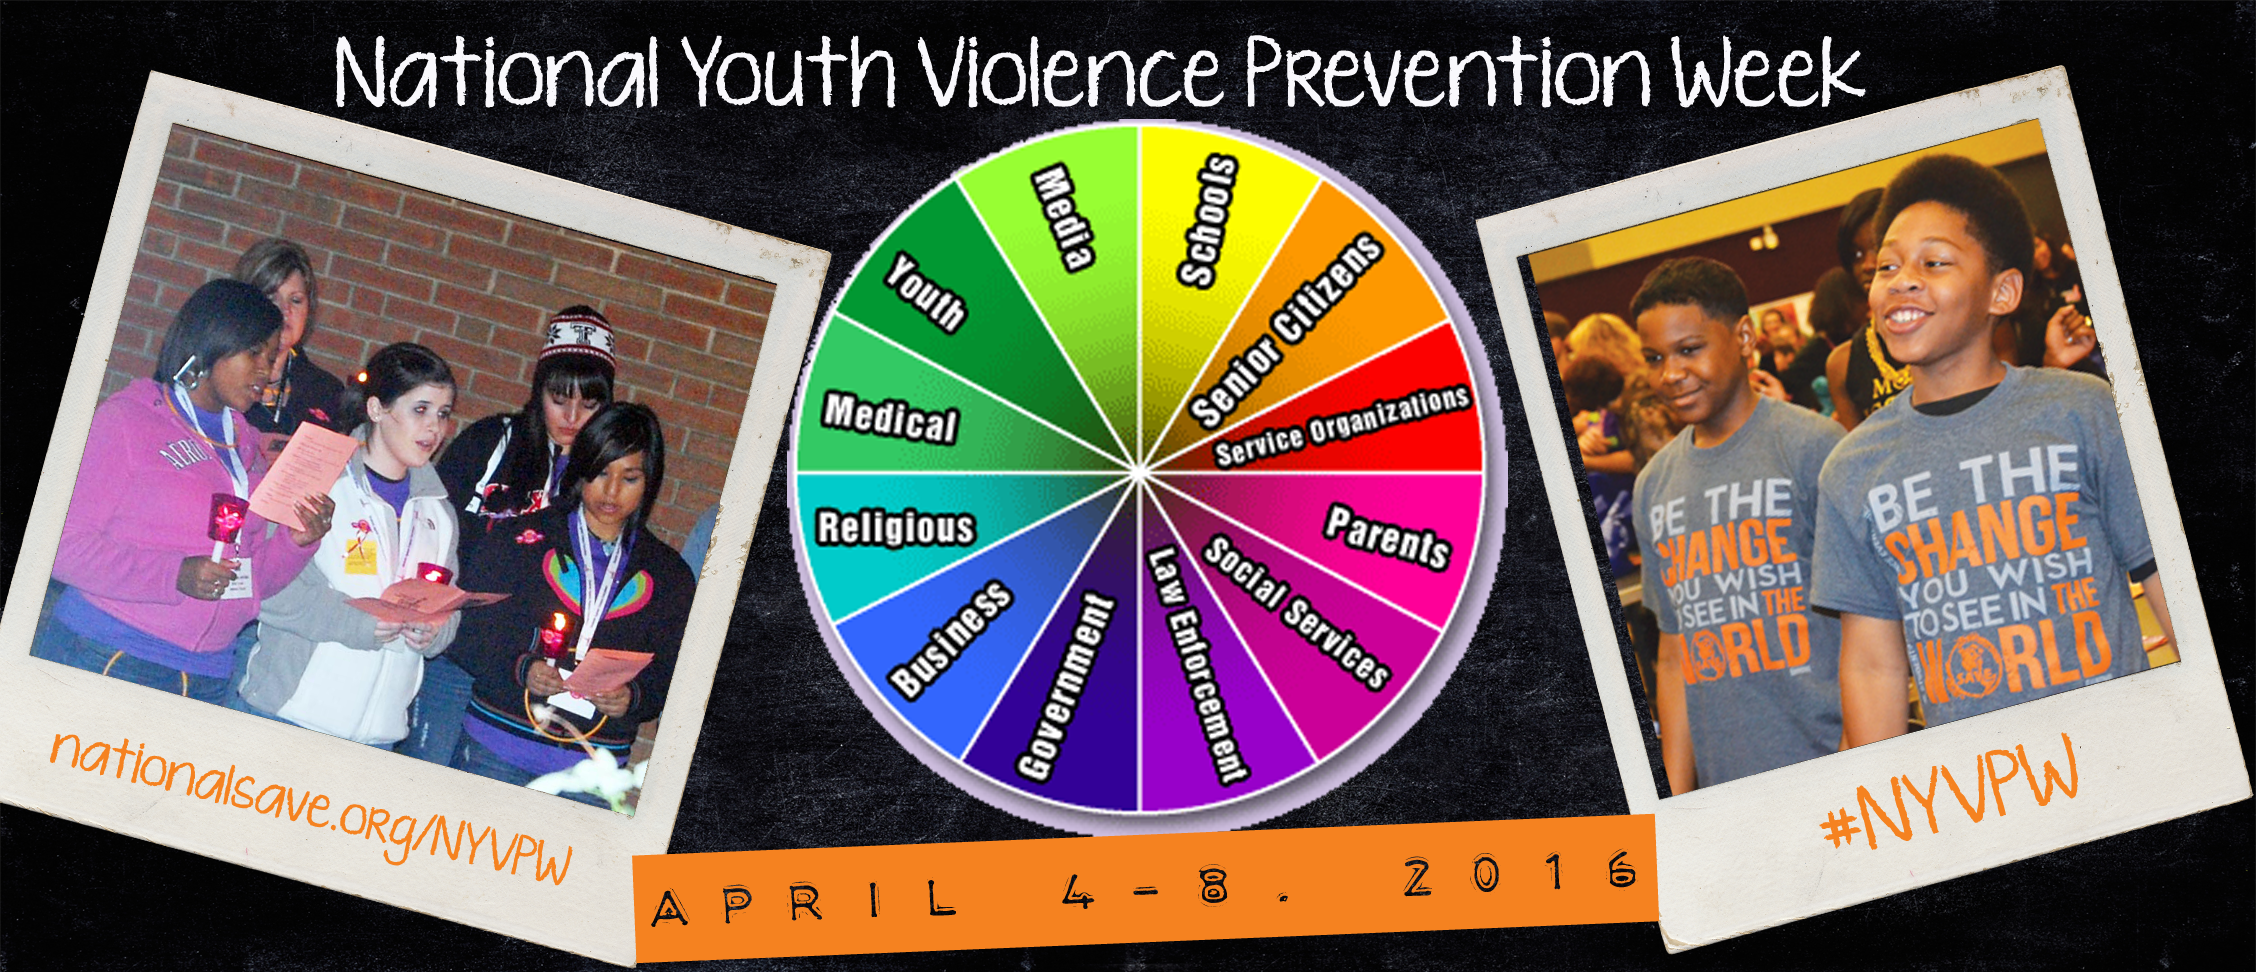 Pin on National Youth Violence Prevention Week